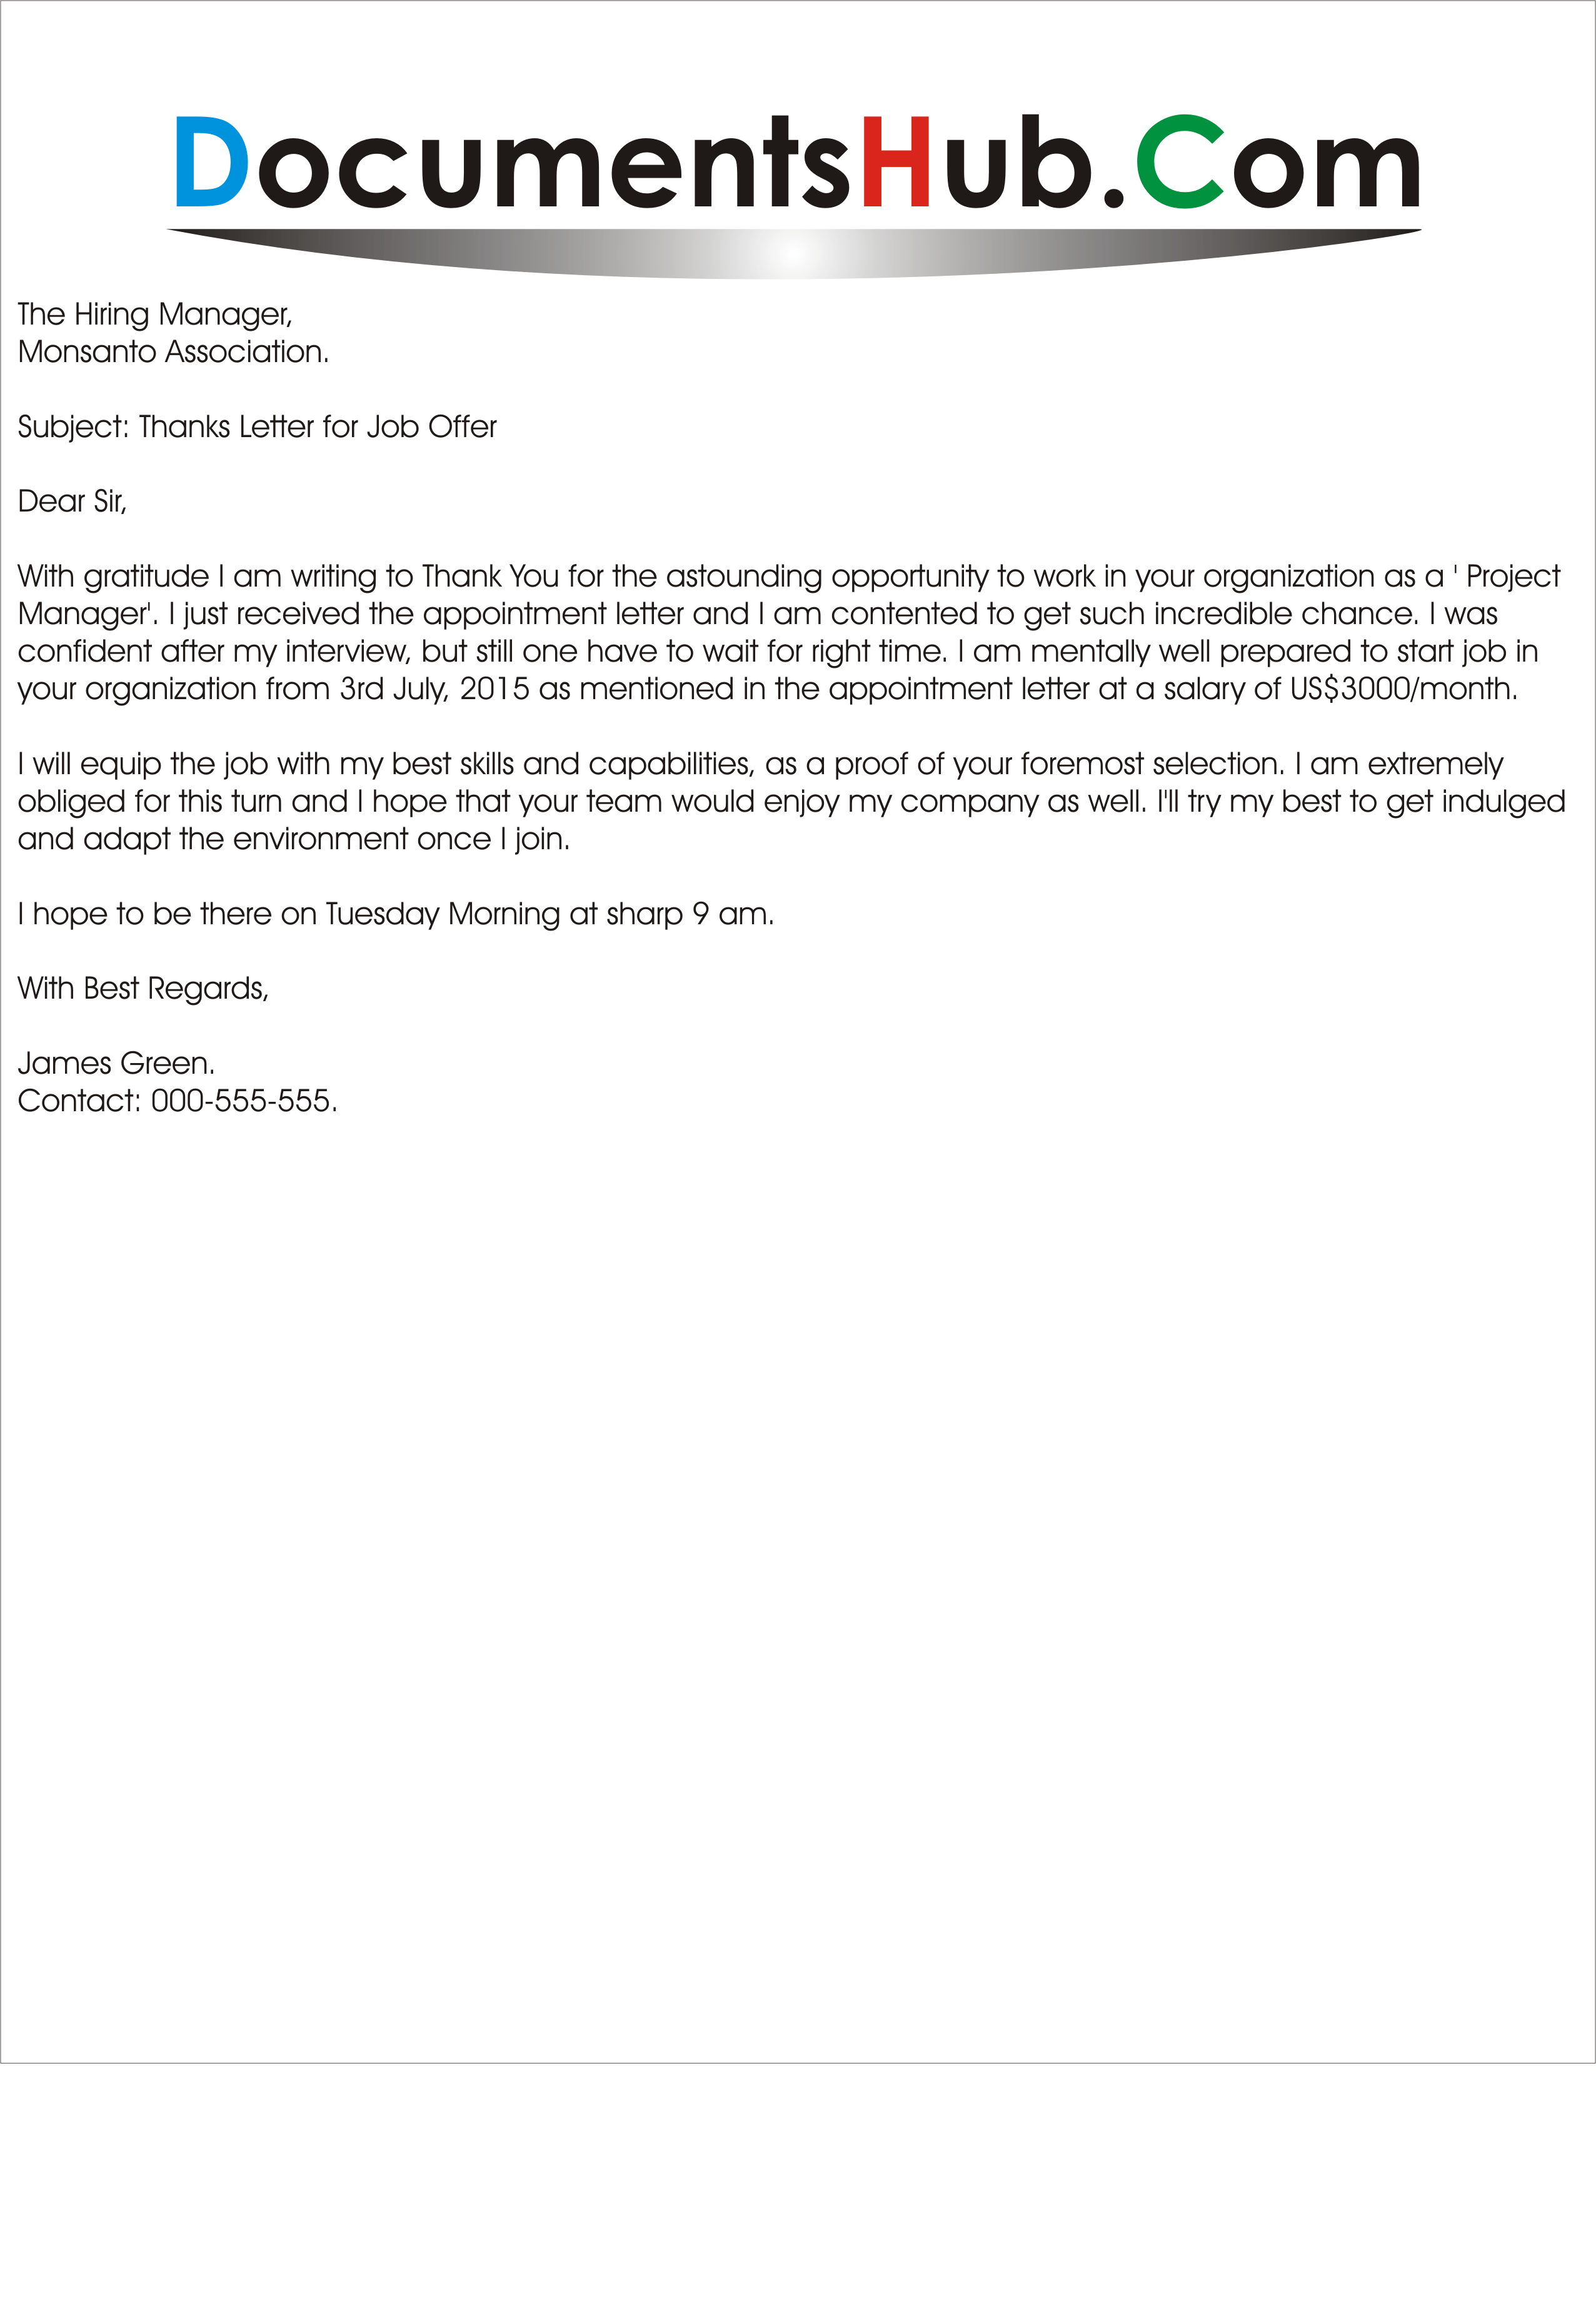 Writing Job Offer Thank-You Letter